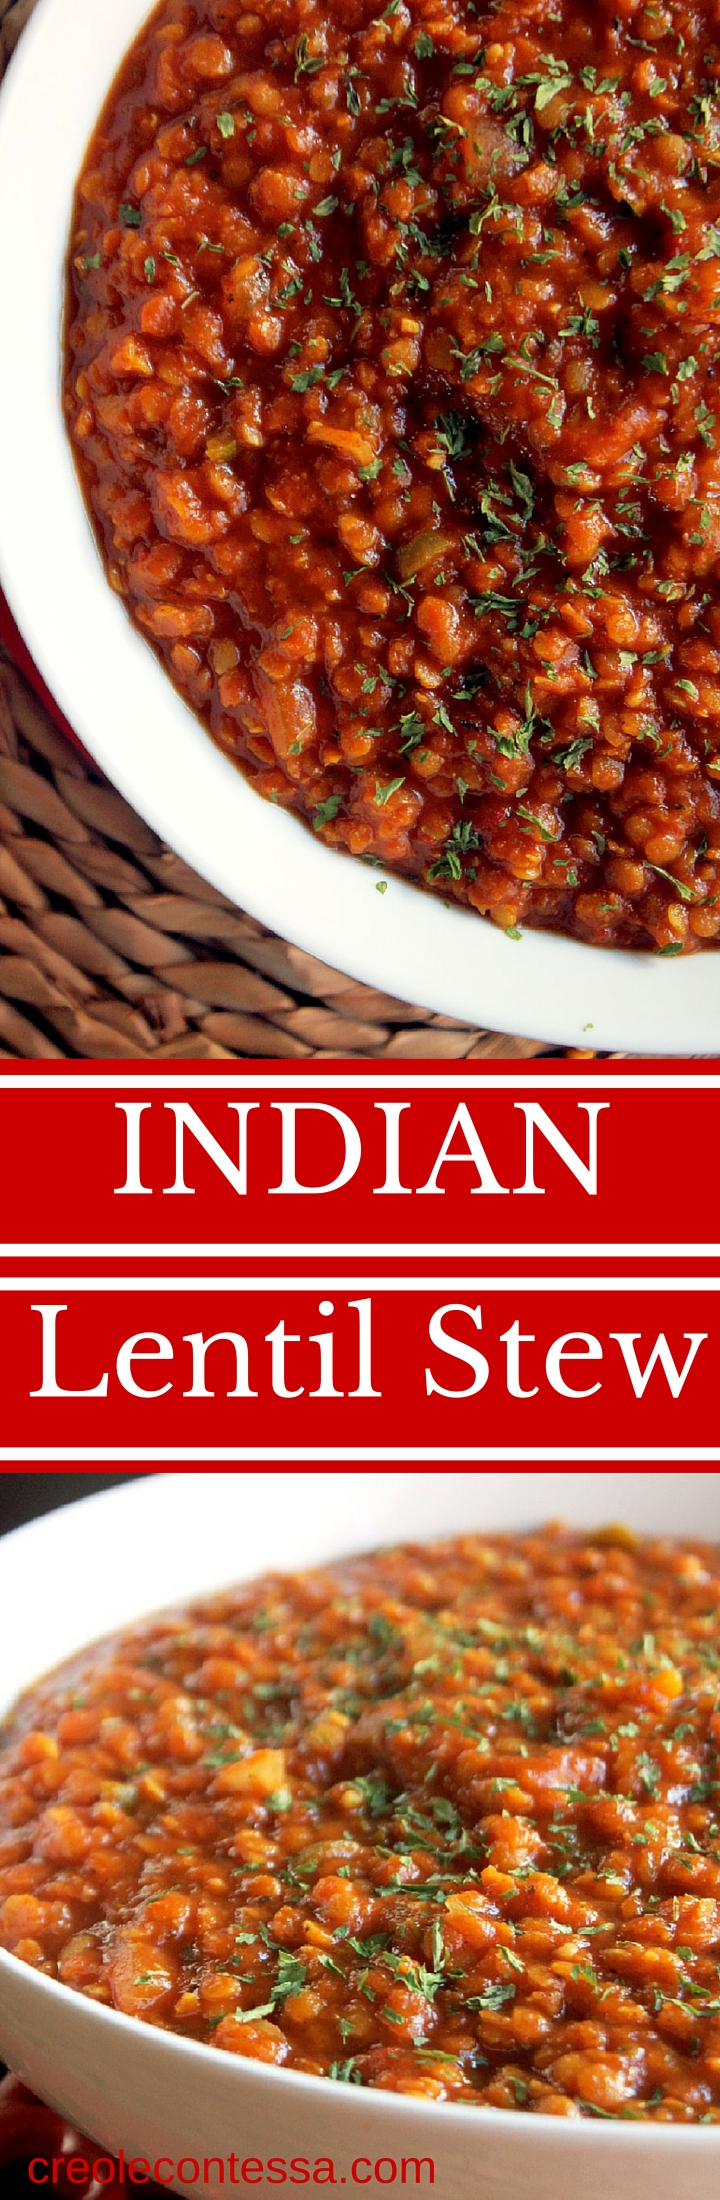 Slow Cooker Indian Lentil Stew - Creole Contessa